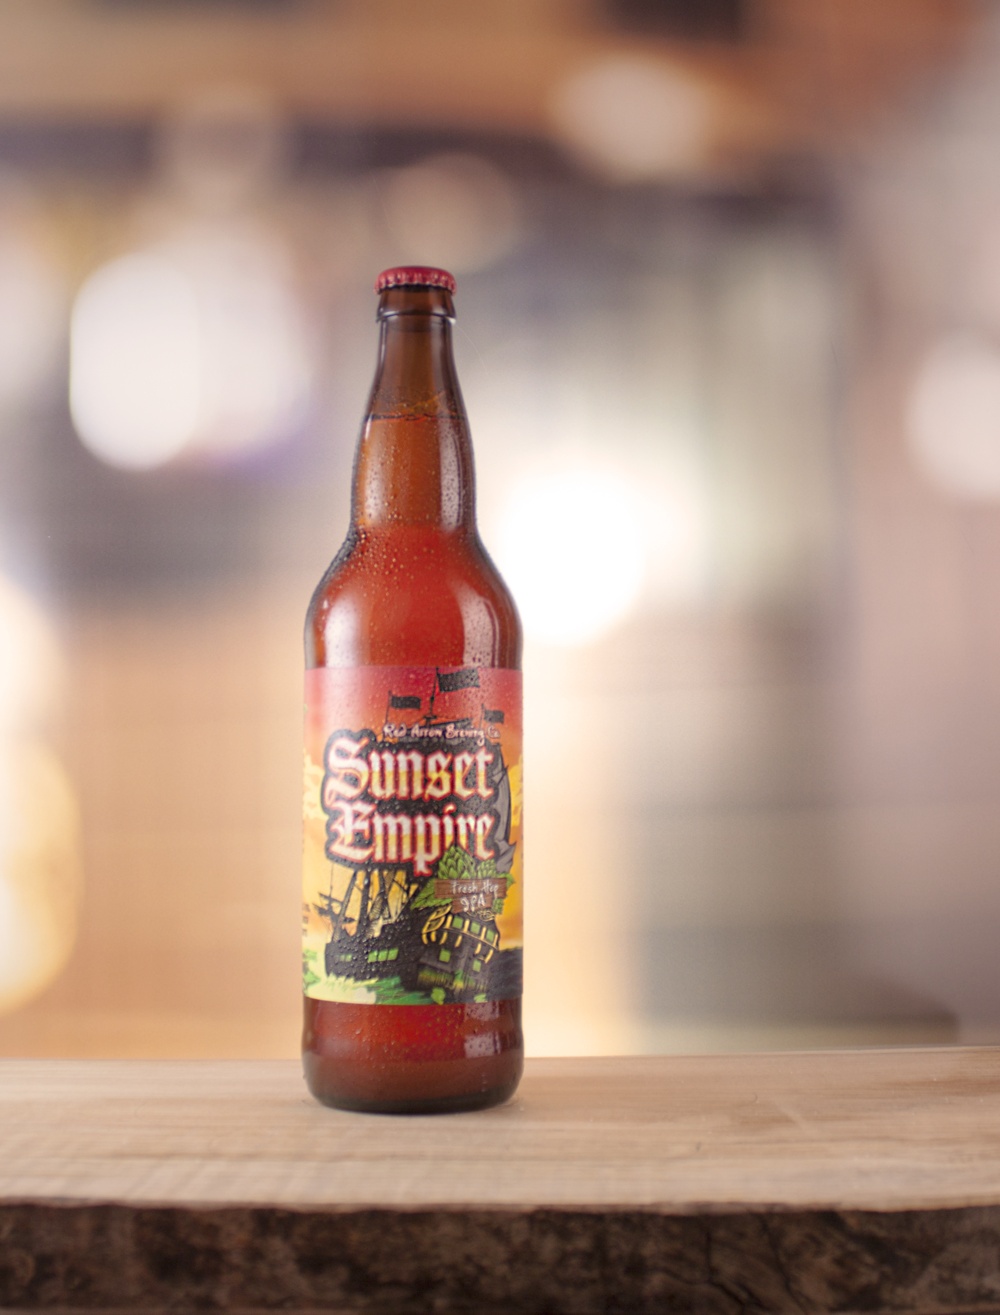 Fresh Hop Co-Op: Sunset Empire New England Style IPA | Bright yellow-gold with a little haze | ABV: 6.0%